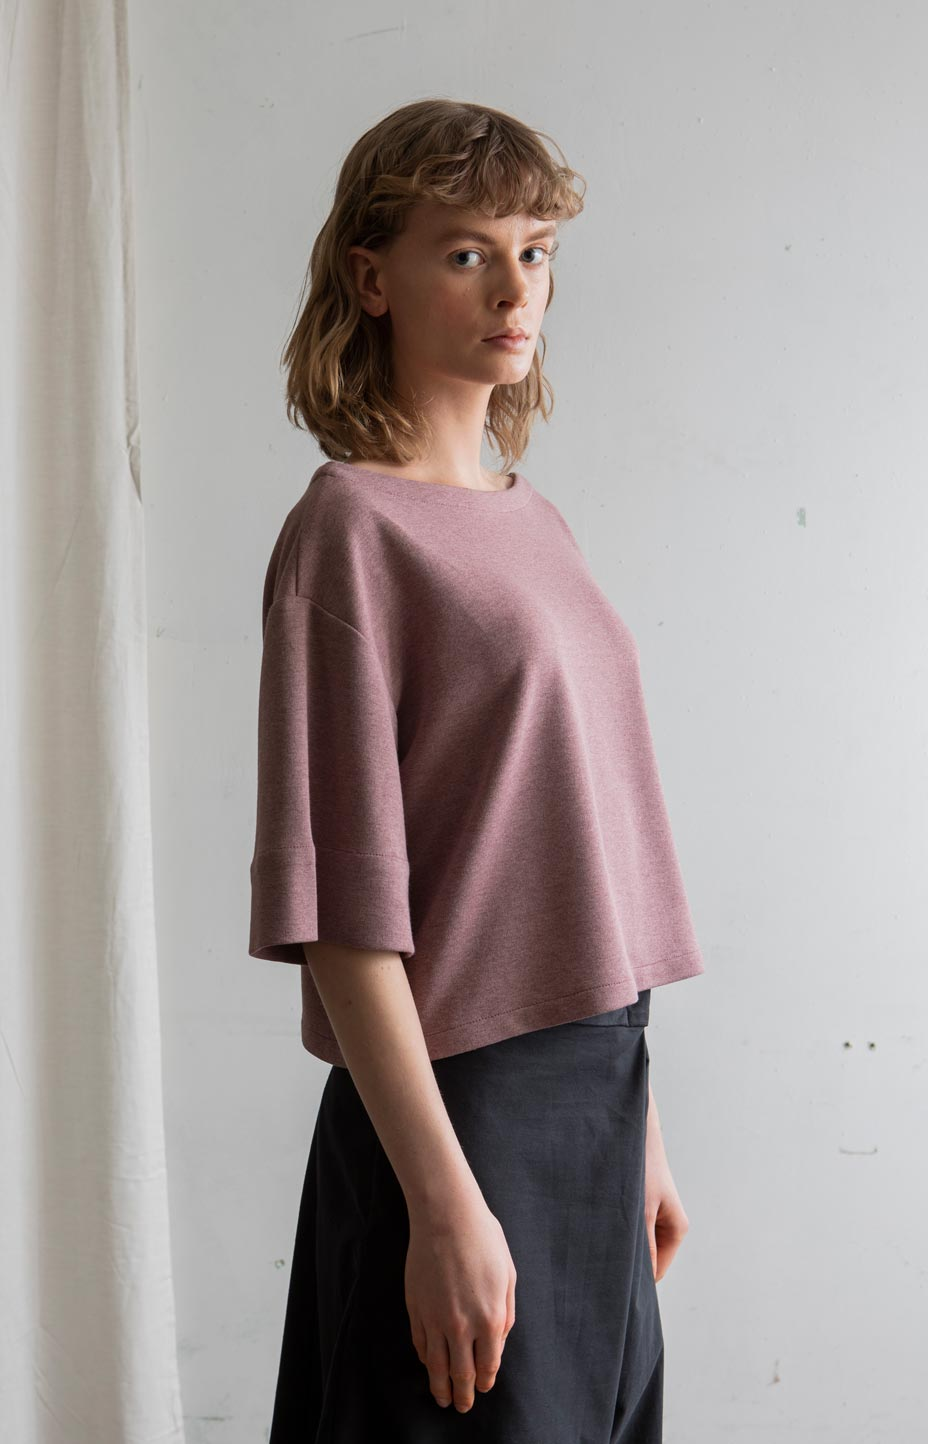 AW20 Ease shirt old rose - Tops - TAUKO - TAUKODESIGN